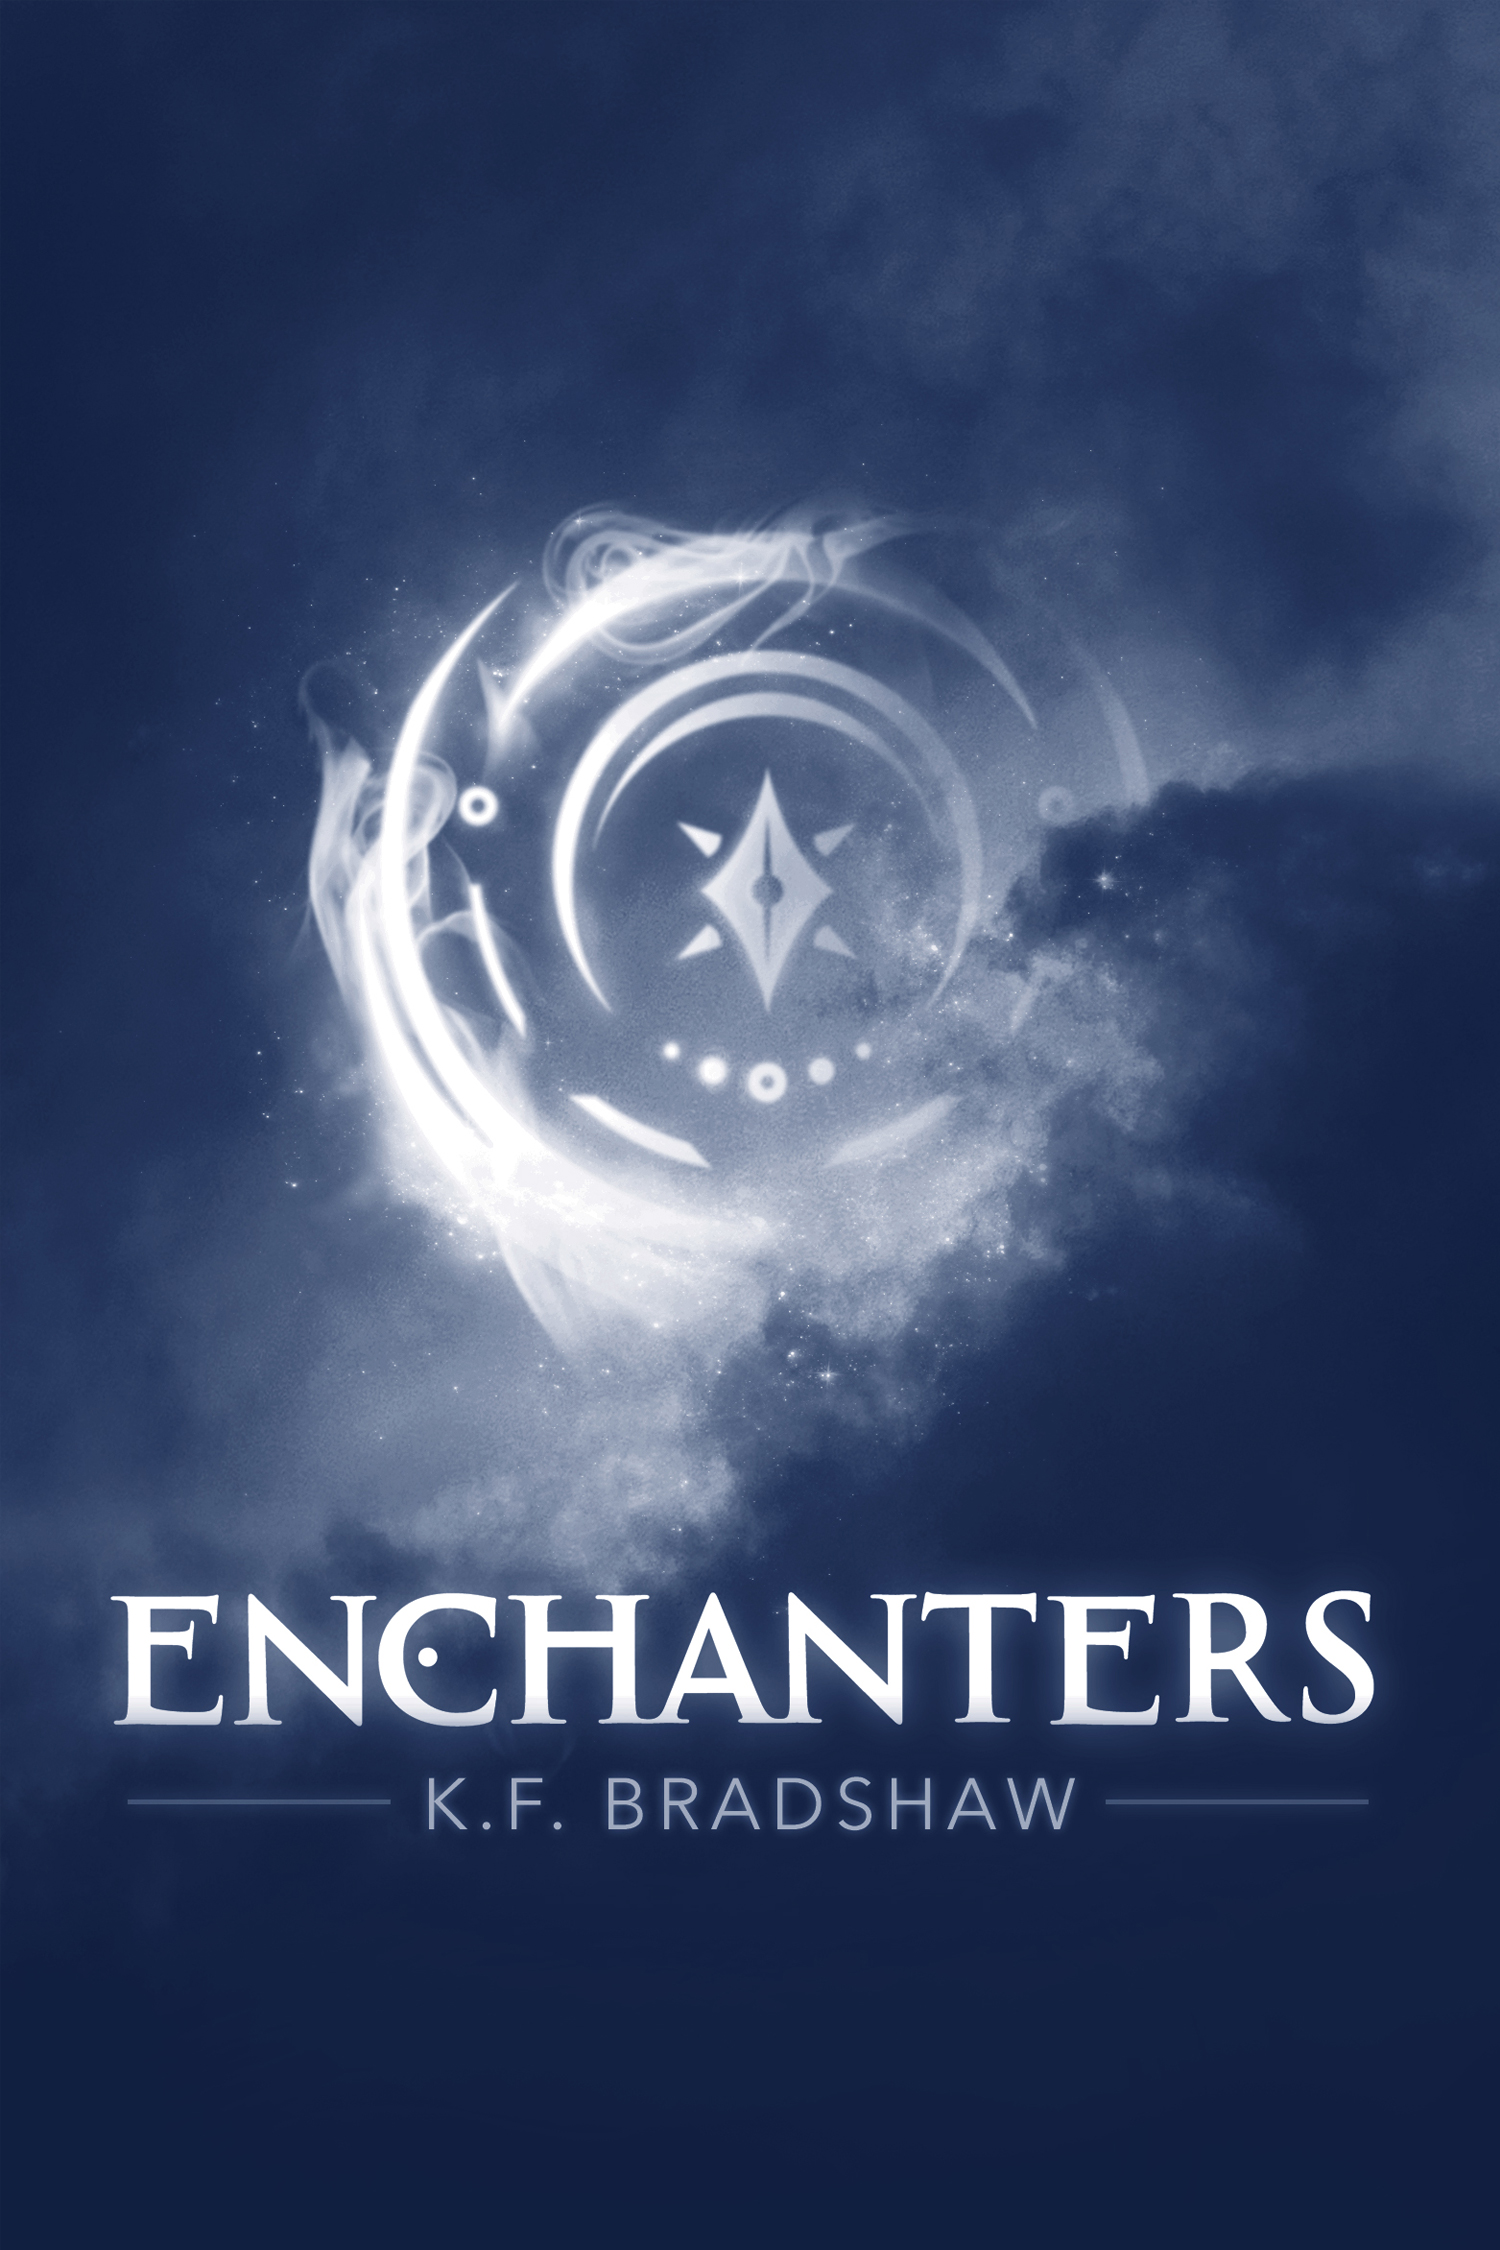 //kfbradshaw.com/wp-content/uploads/2020/12/Enchanters_Cover_edit.jpg